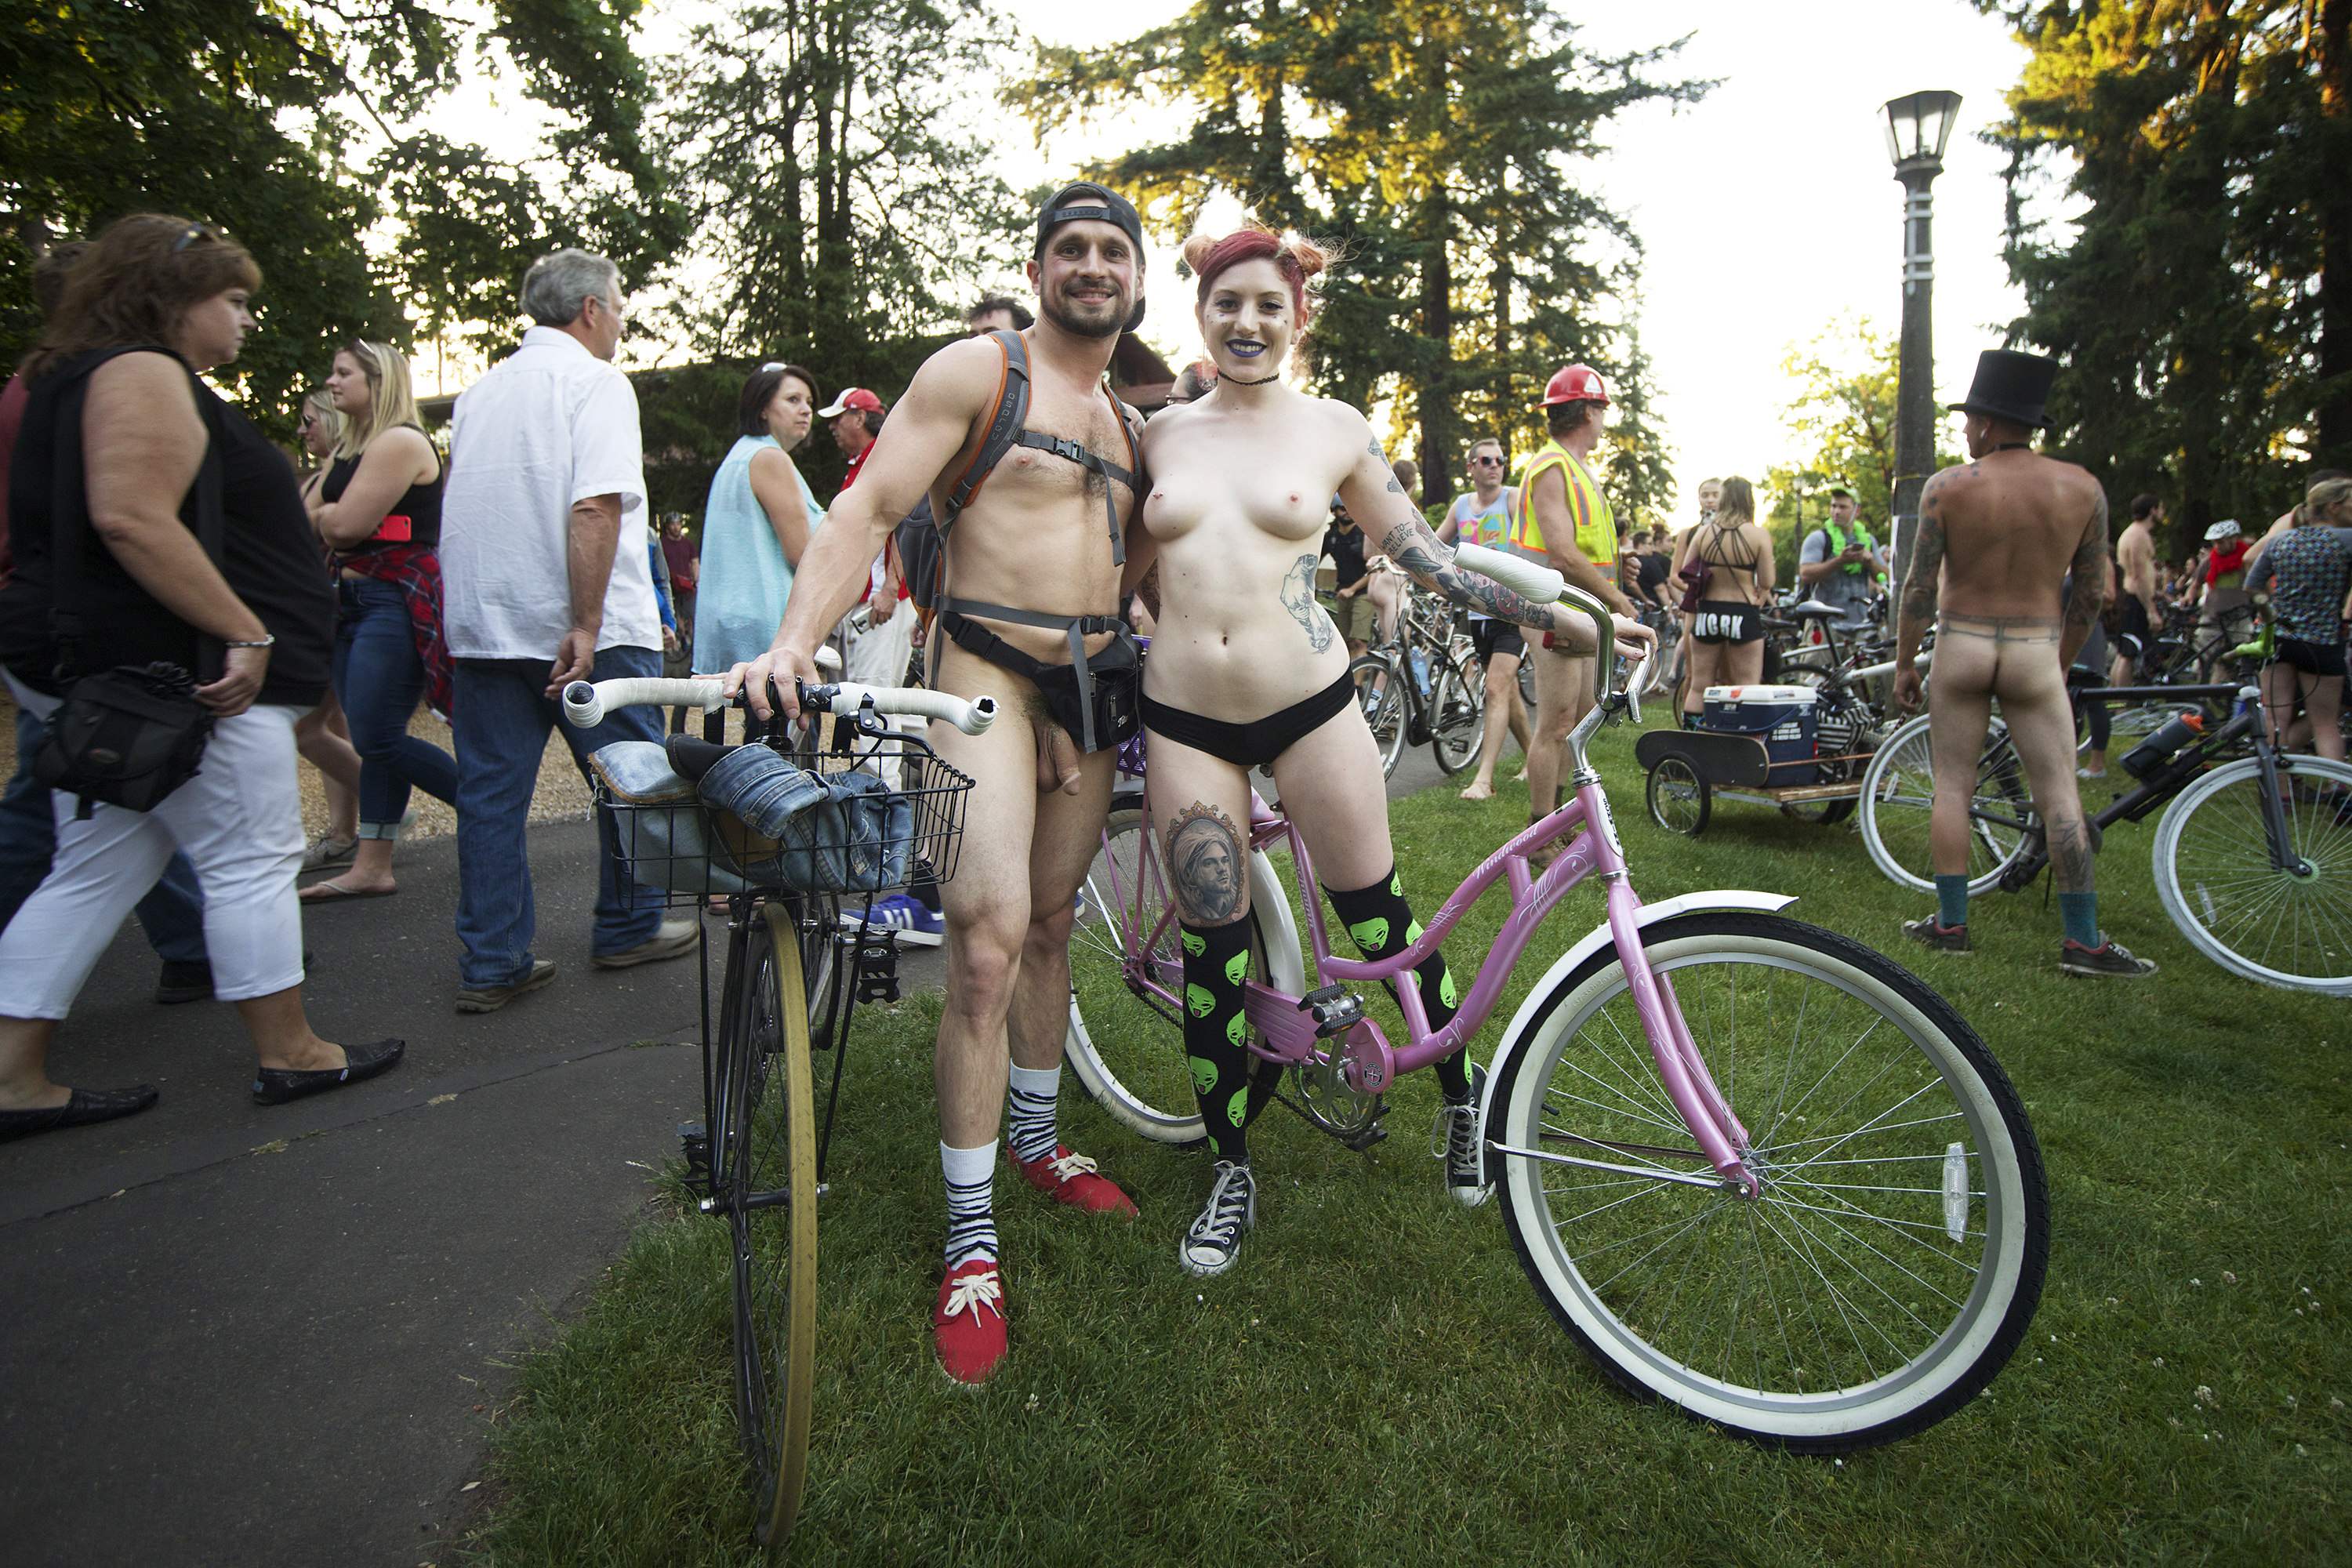 WNBR_WorldNakedBikeRide2016_JeffWalls_DSC4183